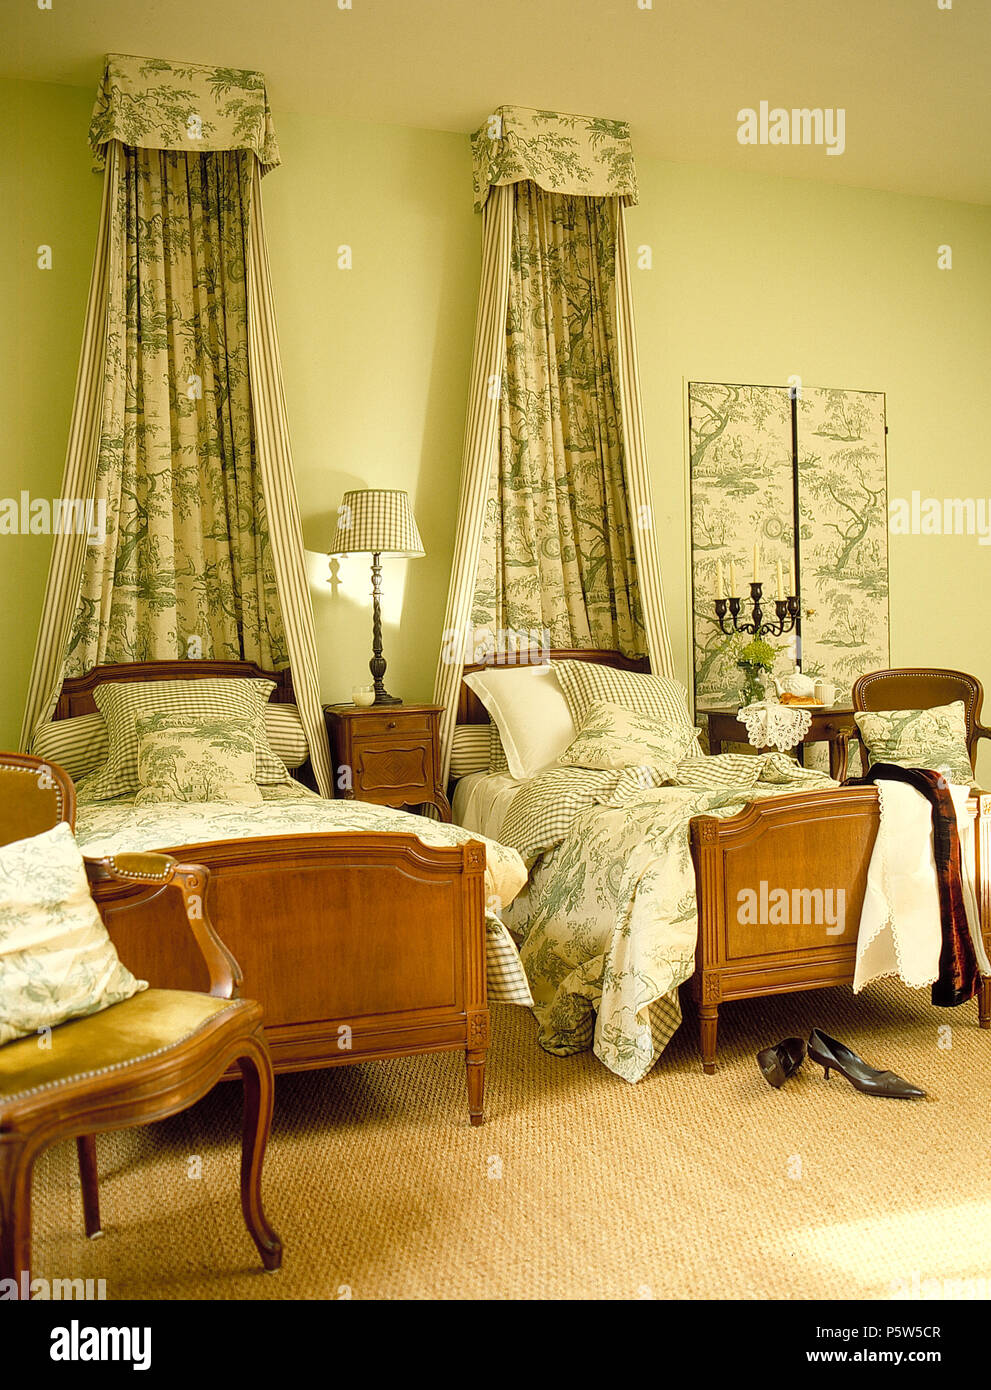 Green Toile De Jouy Canopy And Drapes Above Twin Beds With Matching Toile Quilts In French Country Bedroom Stock Photo Alamy